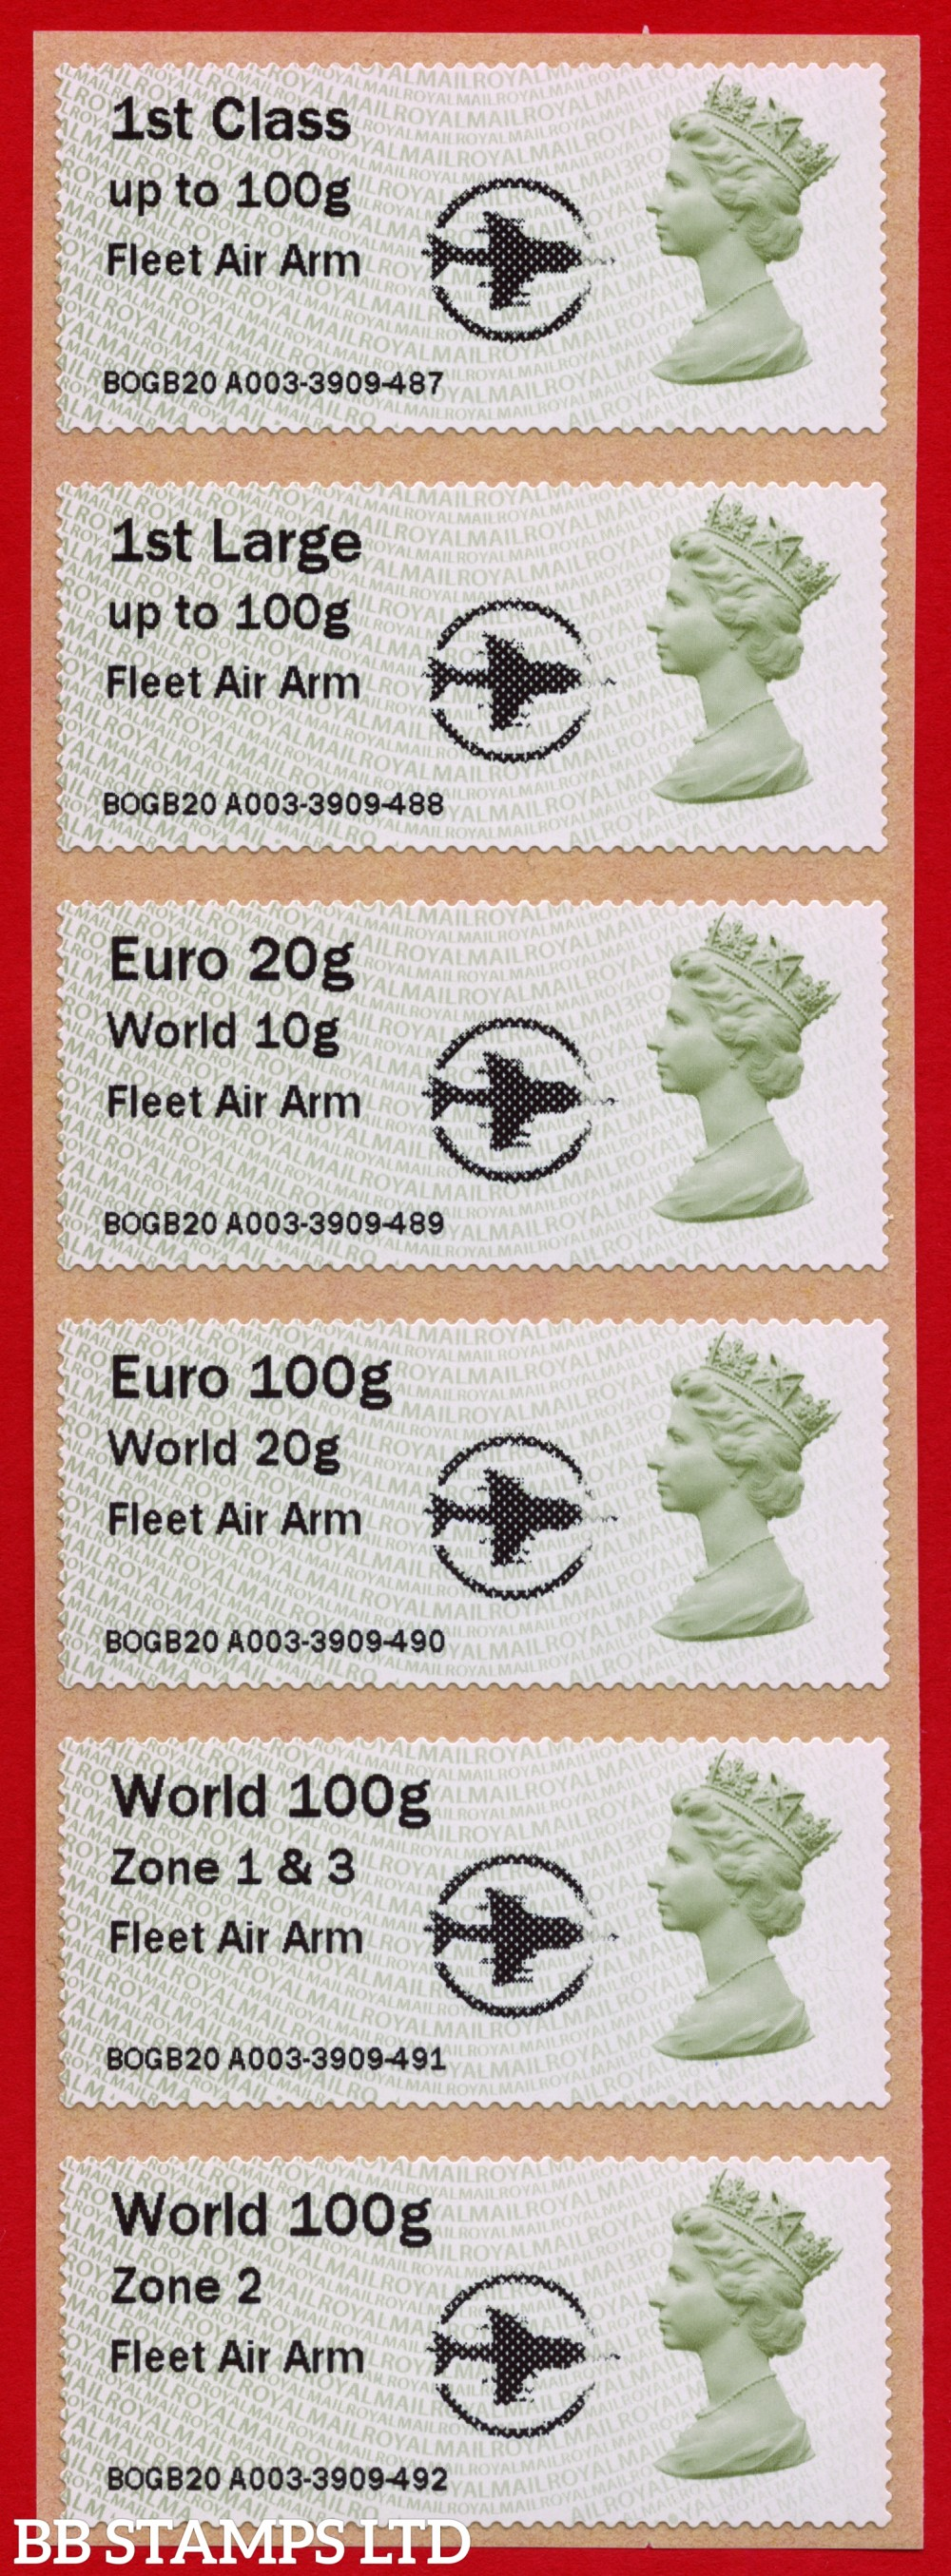 Machin: Fleet Air Arm +small Circle Logo, set of 6 (TIIIA) with new o/seas stamps, revised 18/09/20: 1st/1stL/Euro 20g World 10g, and 3 new values: Euro 100g World 20g, World 100g Zone 1 & 3 [&, not a hyphen], and World Zone 2: MA13 year code (BK30 P13)